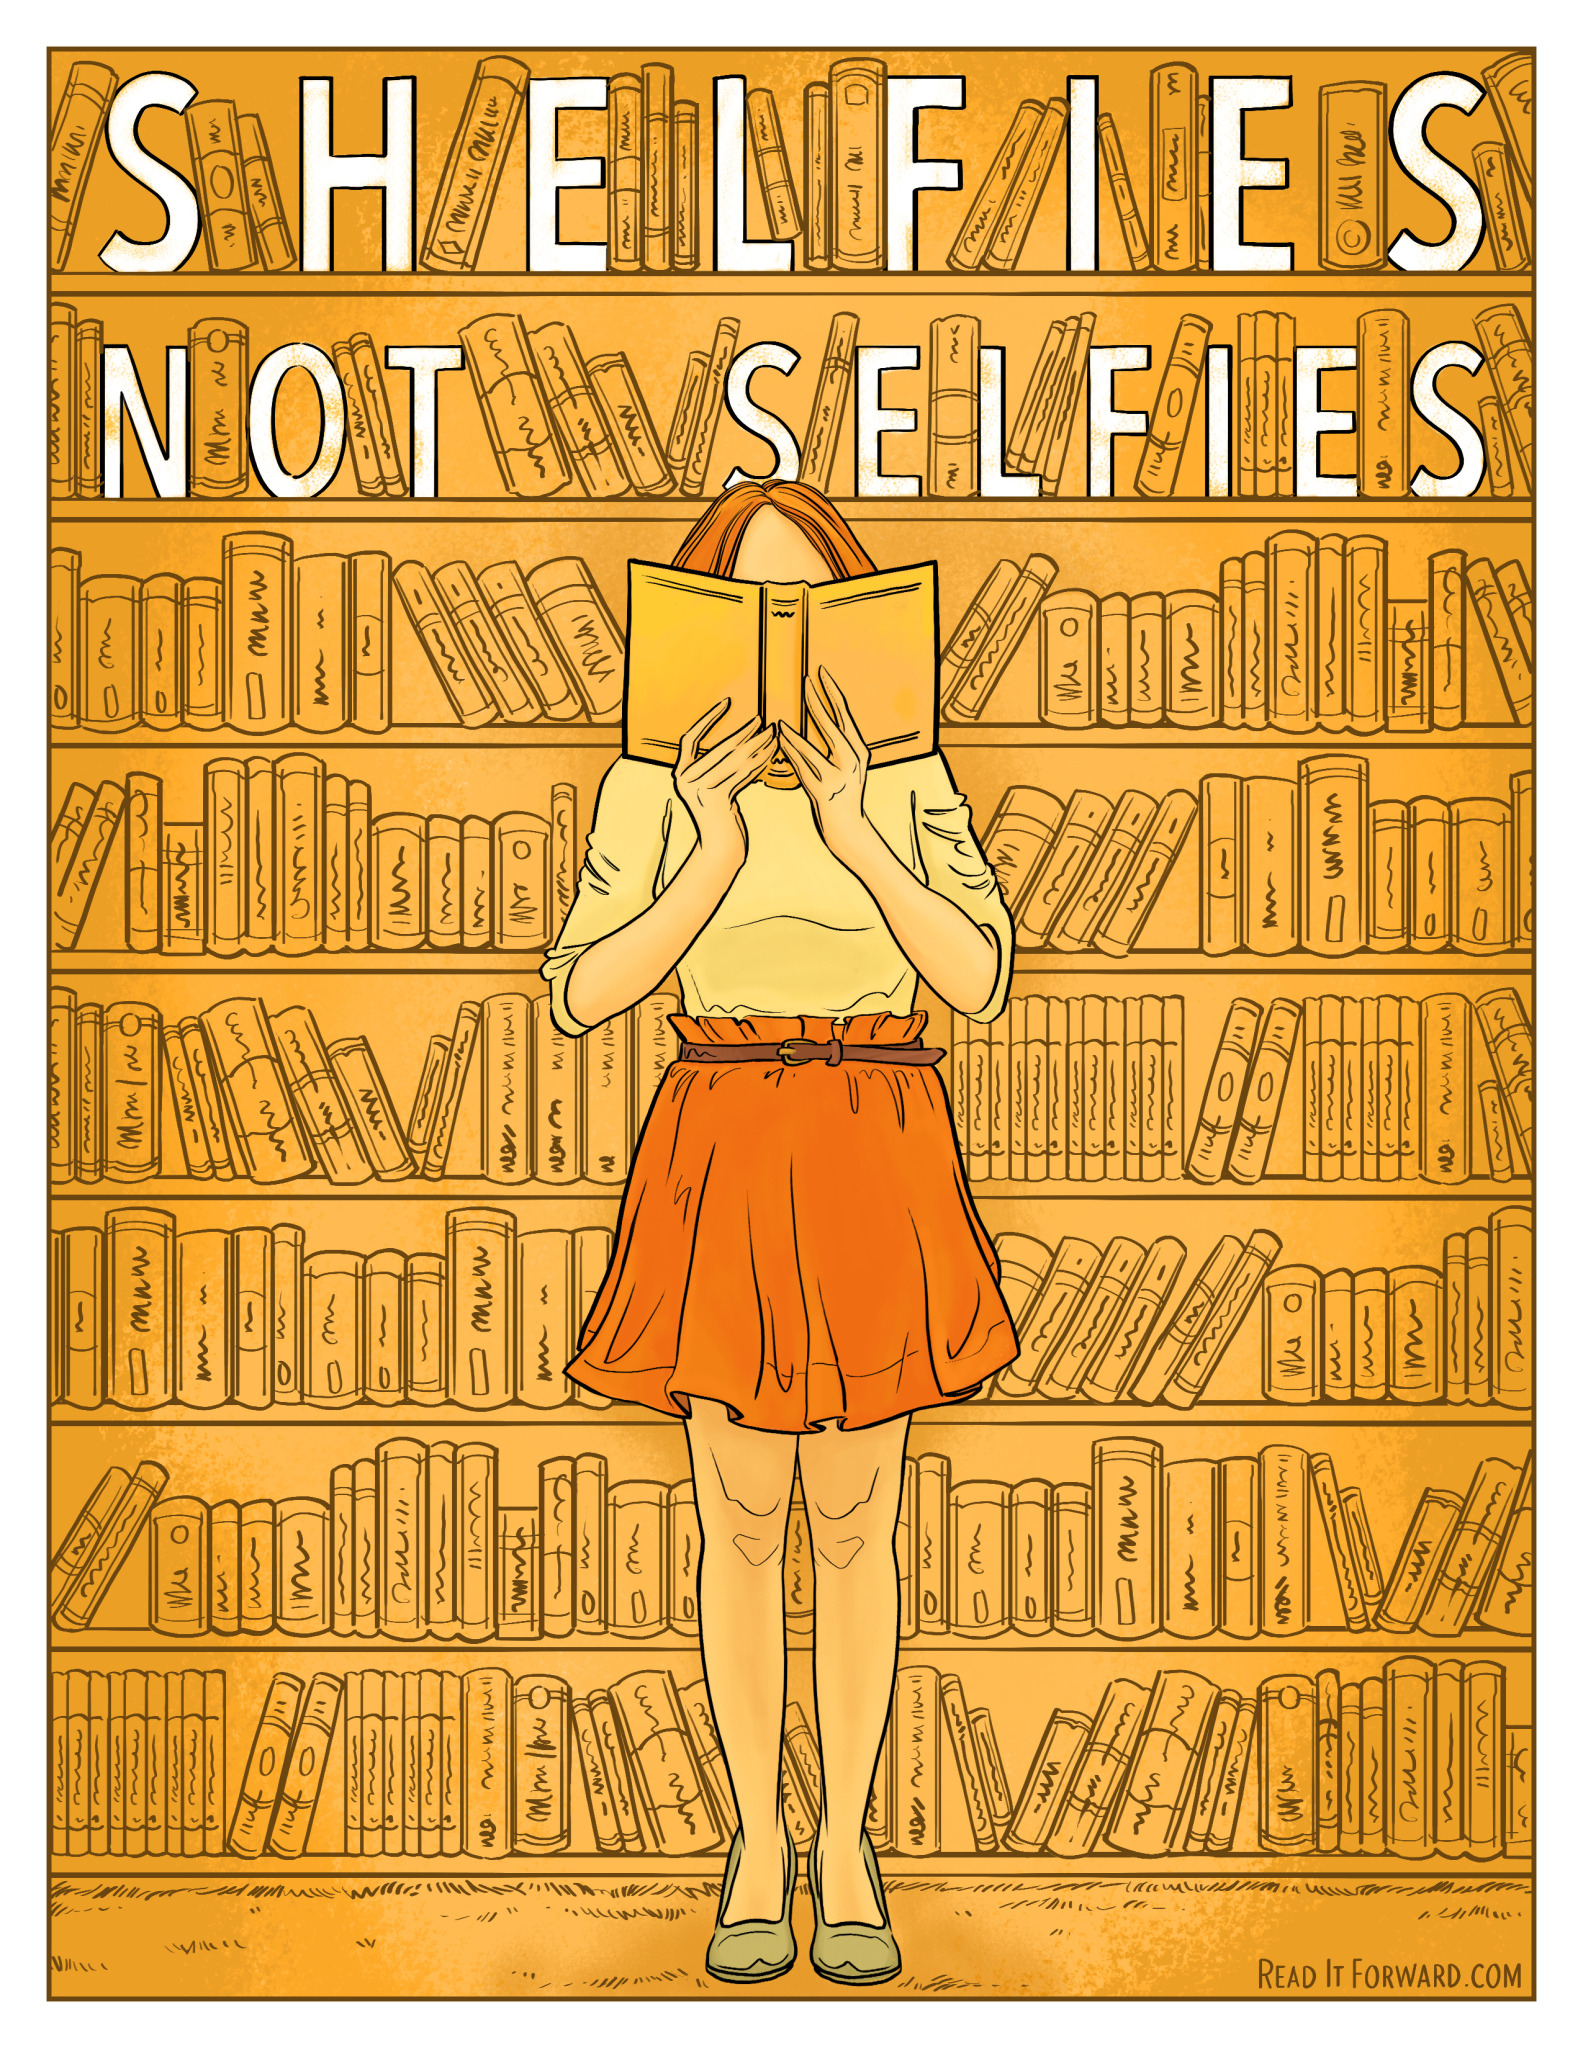 shelfies not selfies